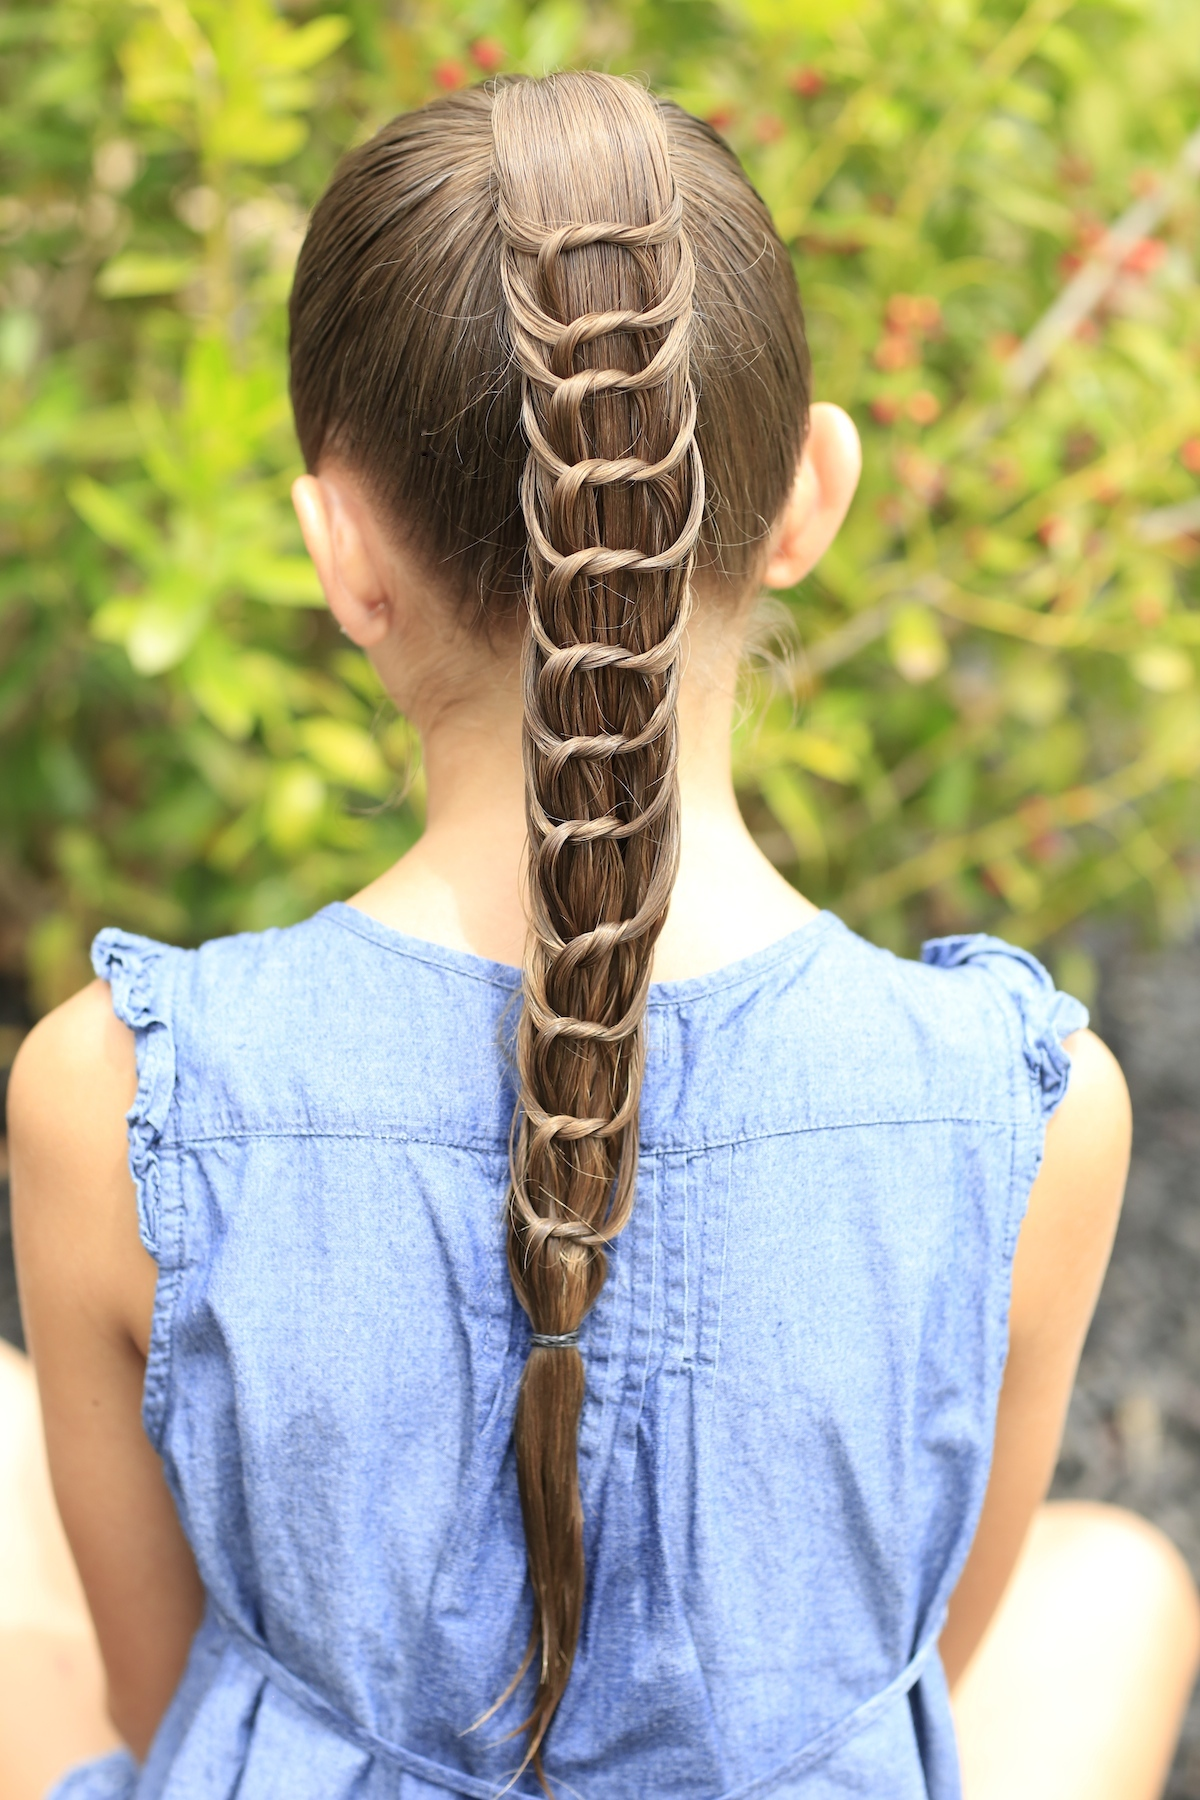 The Knotted Ponytail | Hairstyles for Girls | Cute Girls Hairstyles